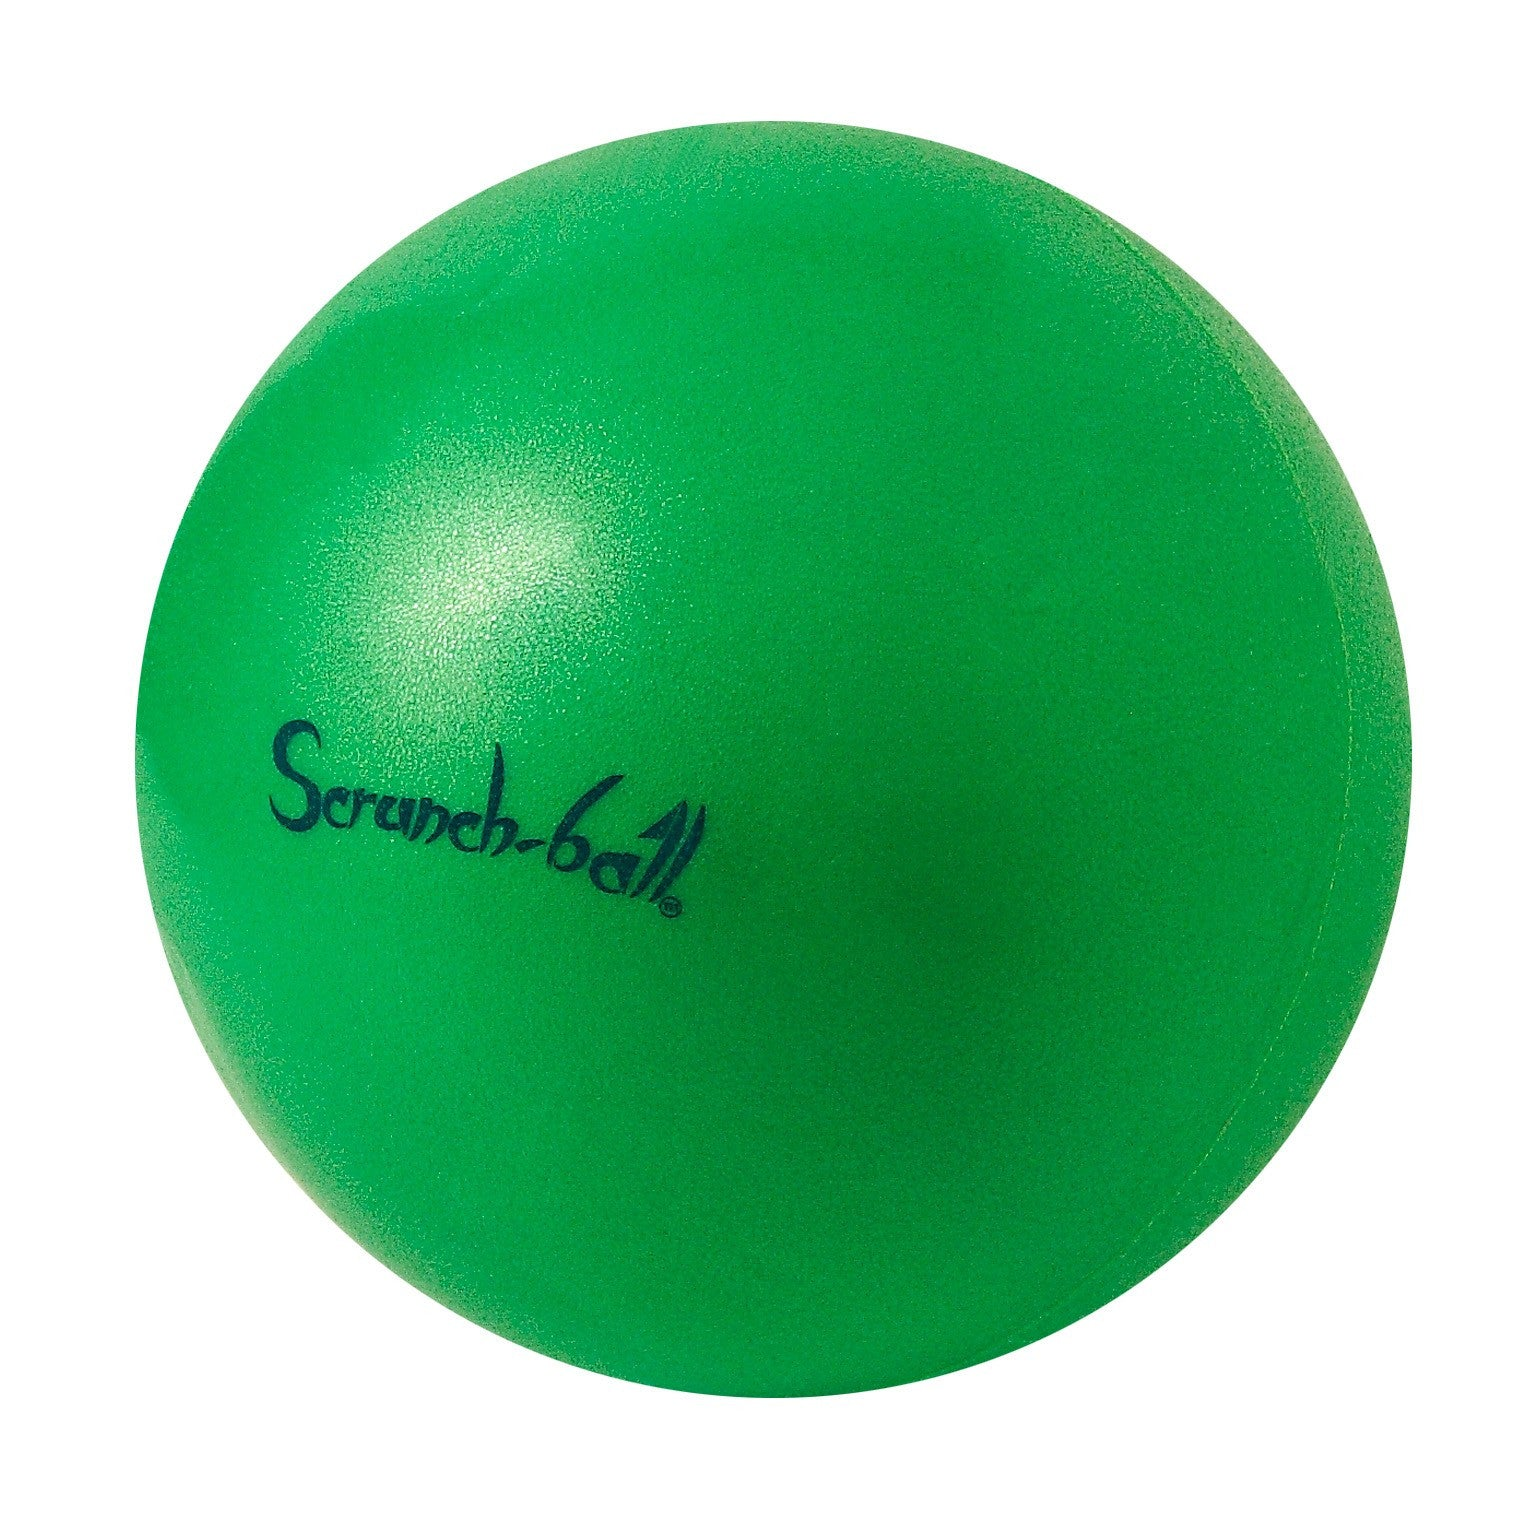 Scrunch-Ball Teal